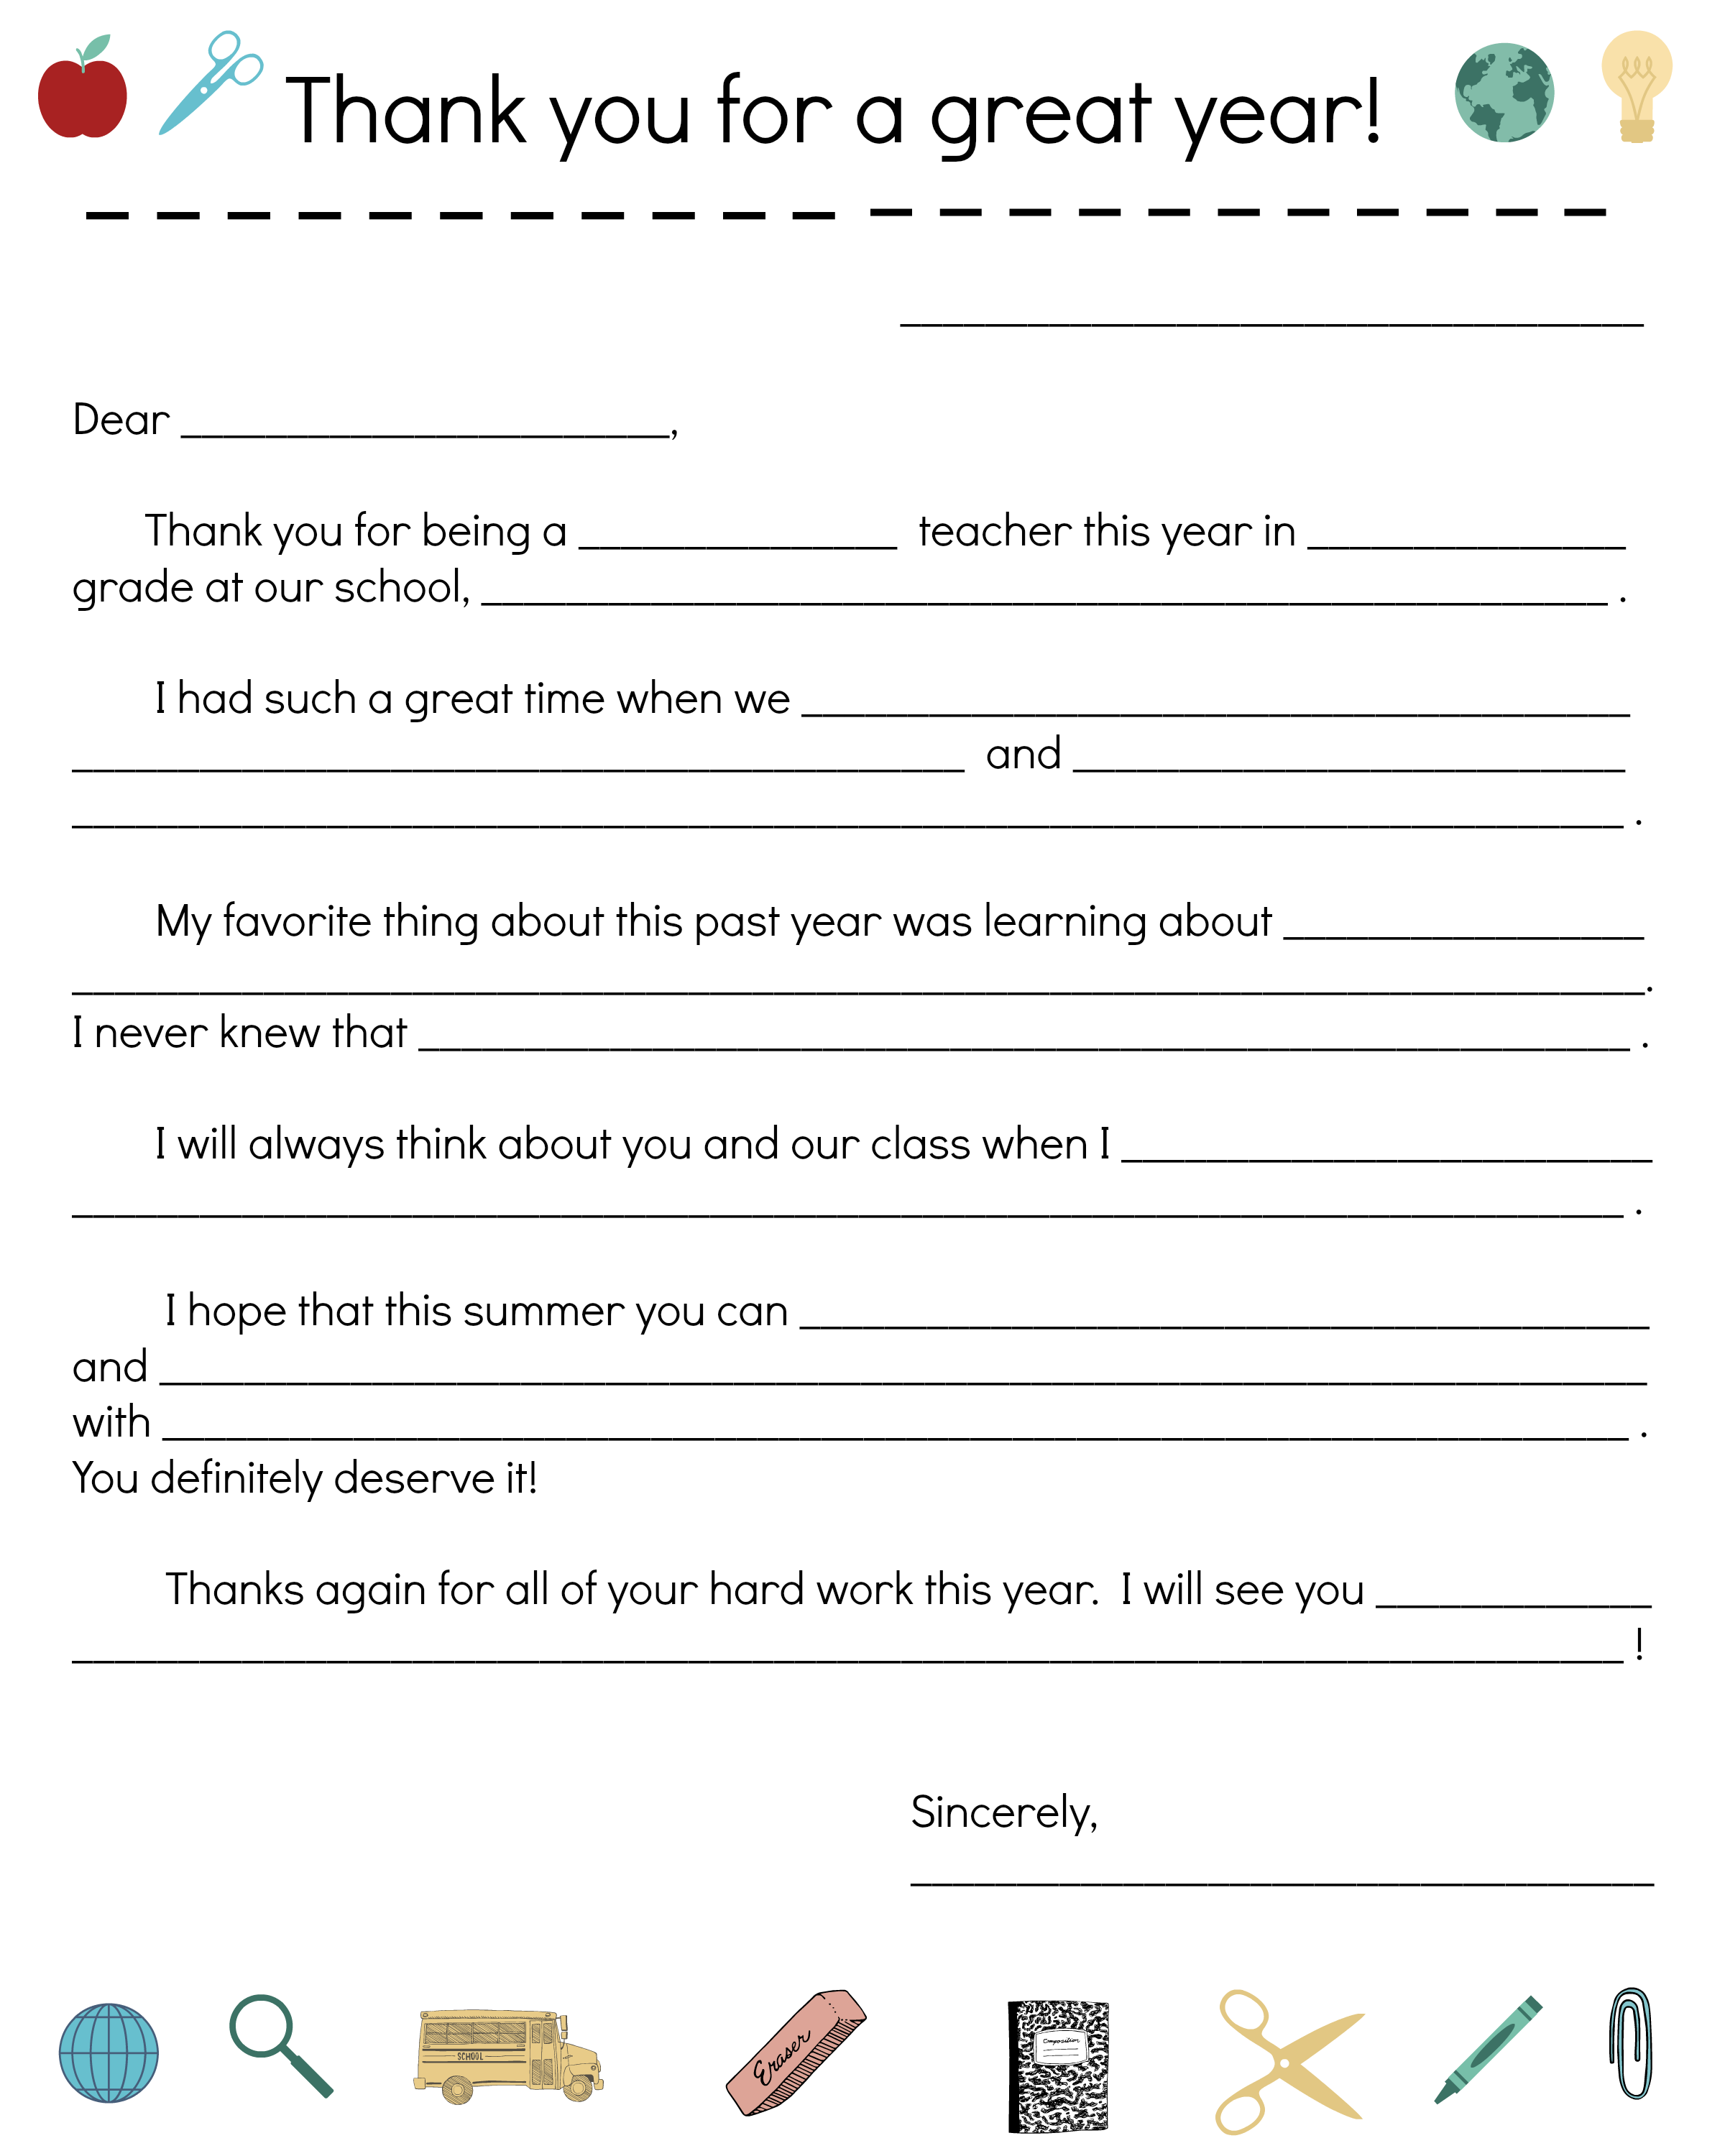 Say thanks to teachers with a fill in note from your child say thanks to teachers with a fill in note from your child scholastic parents expocarfo